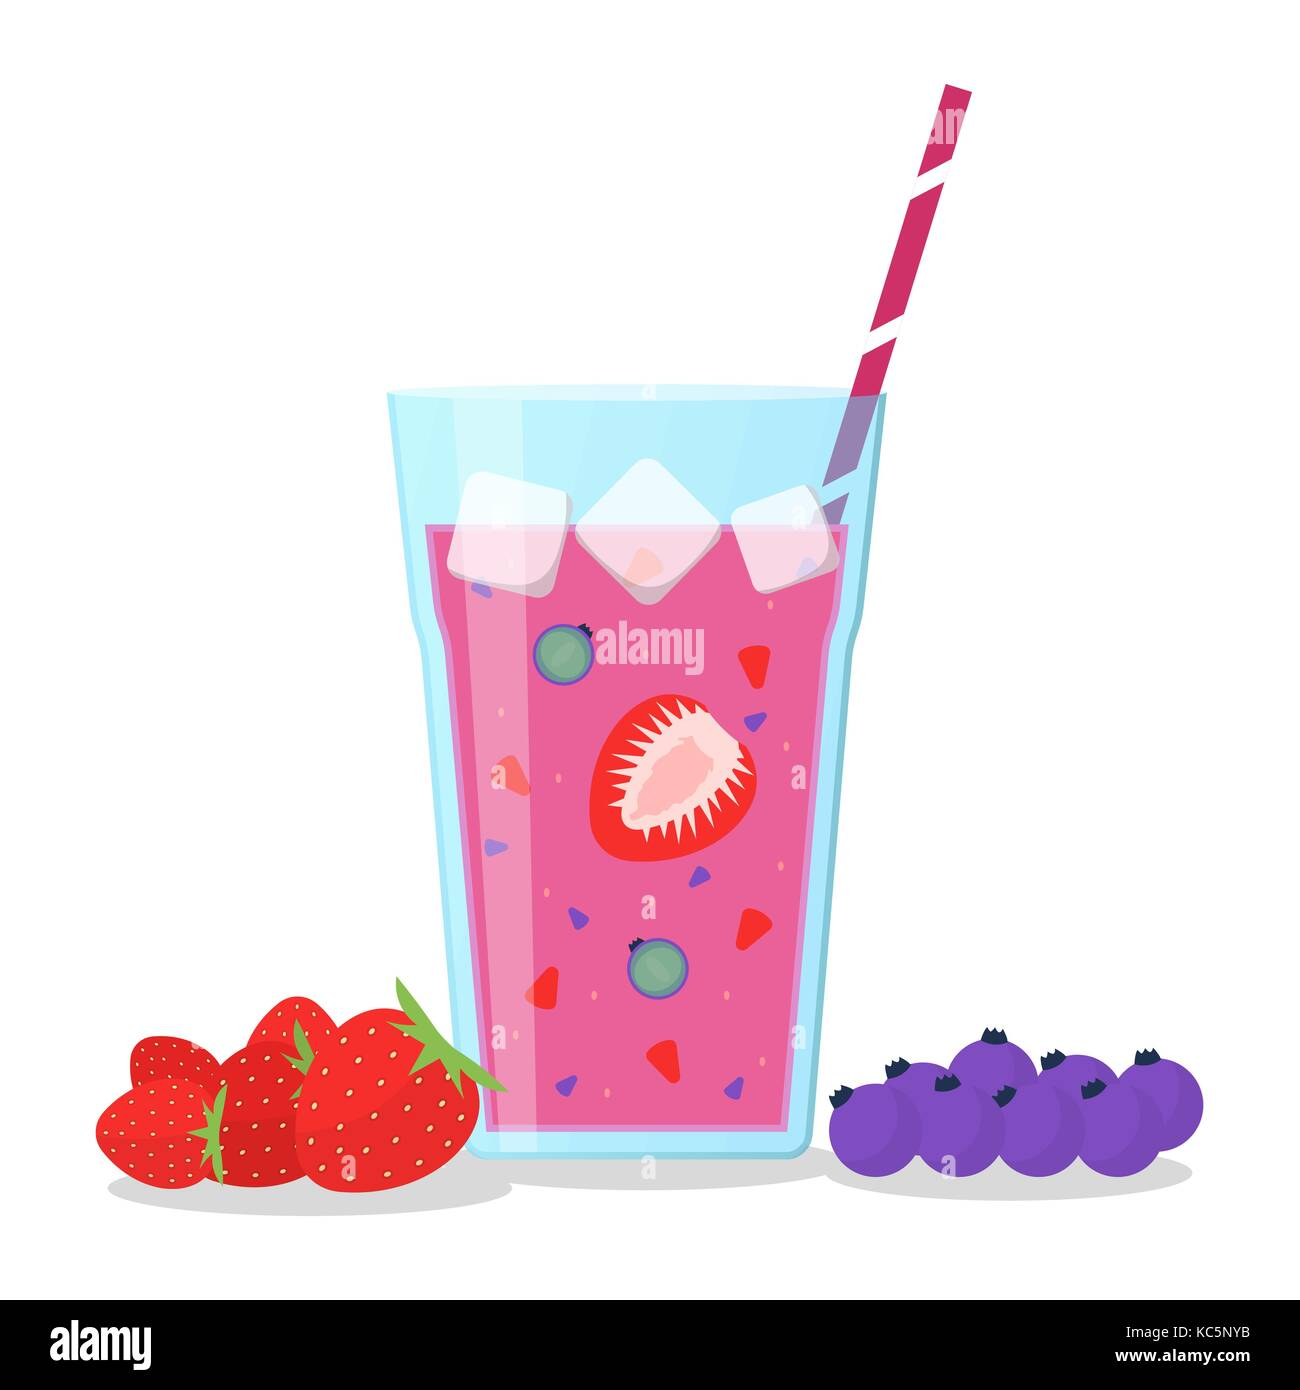 Berries mix smoothie vector illustration. Smoothie in a jug and a glass with a straw Wellness and healthy lifestyle. Stock Vector